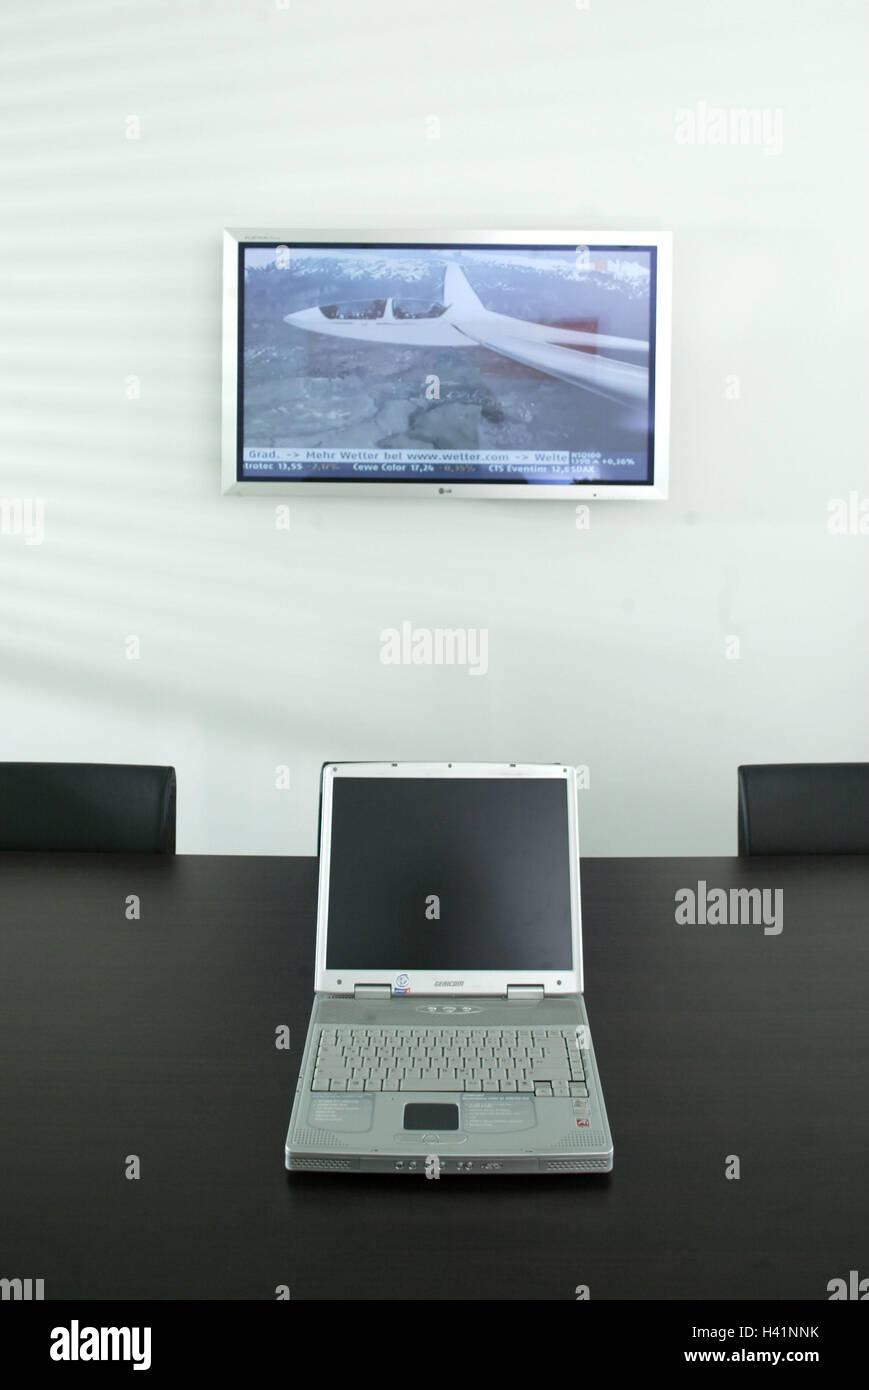 Meeting Room Conference Table Laptop Wall Flat Screen Tv Stock